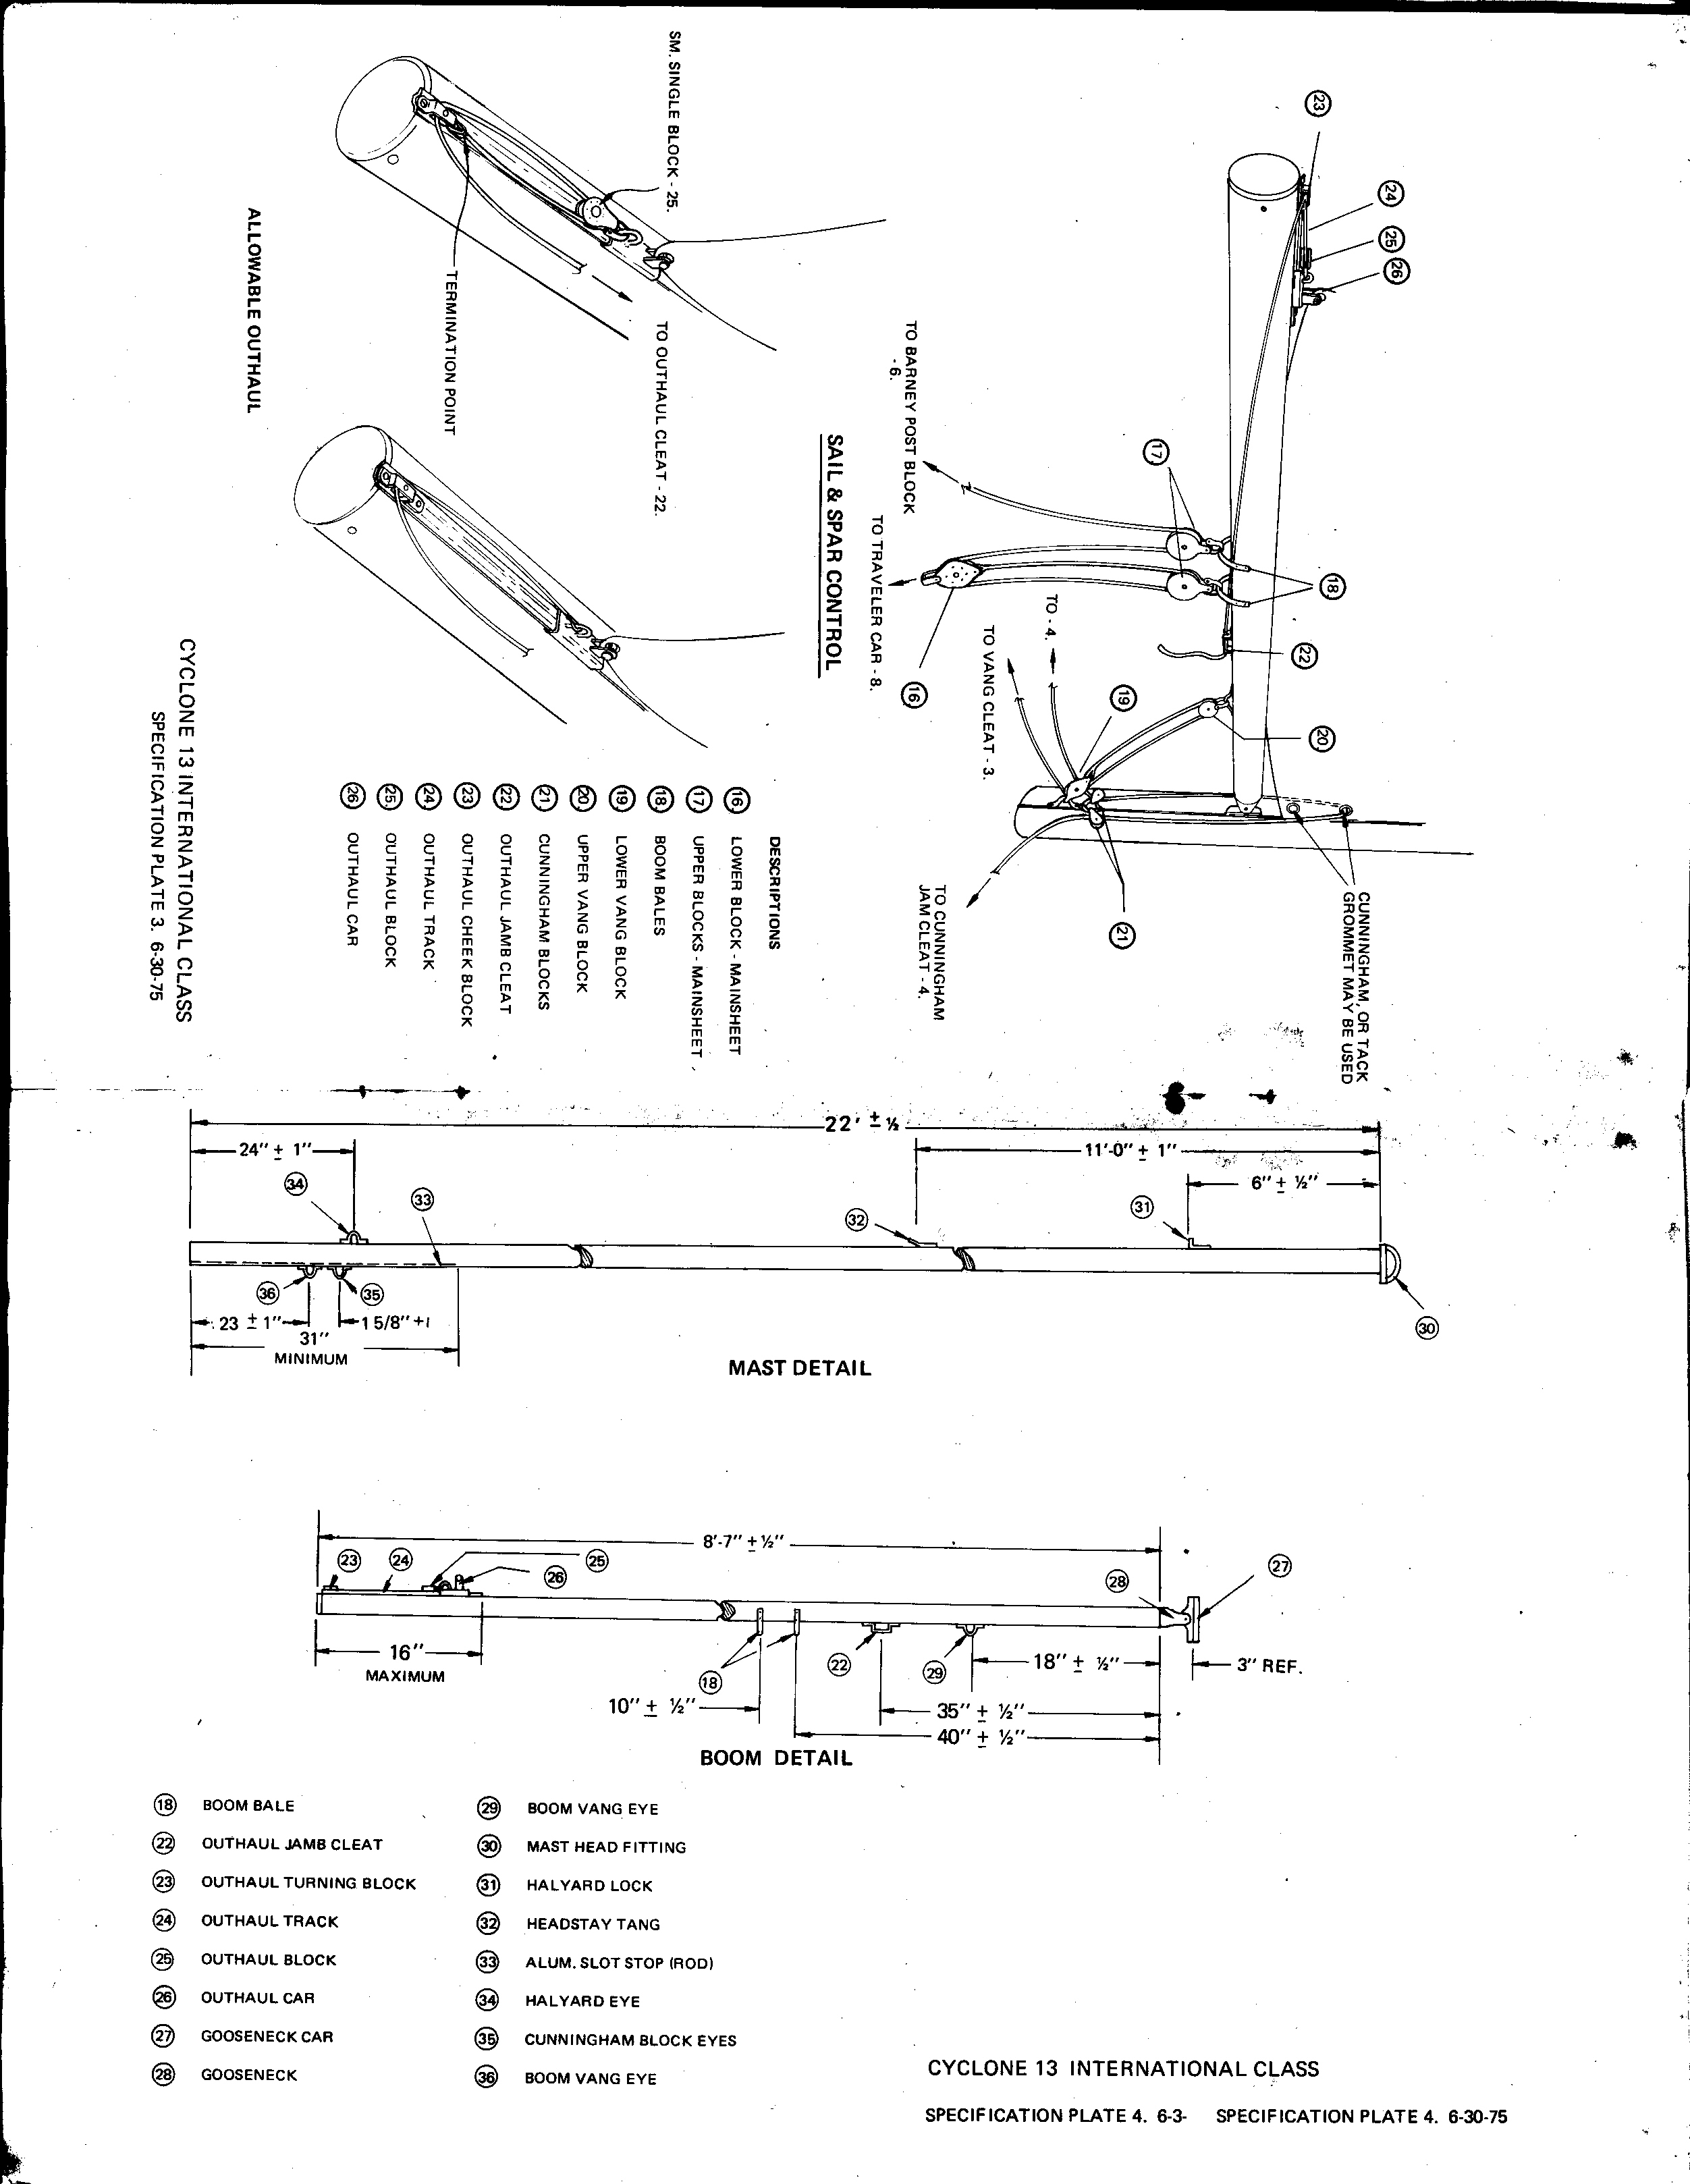 Html Wilderness Hubpages Com Hub How To Wire A 3 Way Switch Wiring Diagram C13specificationplates3and4